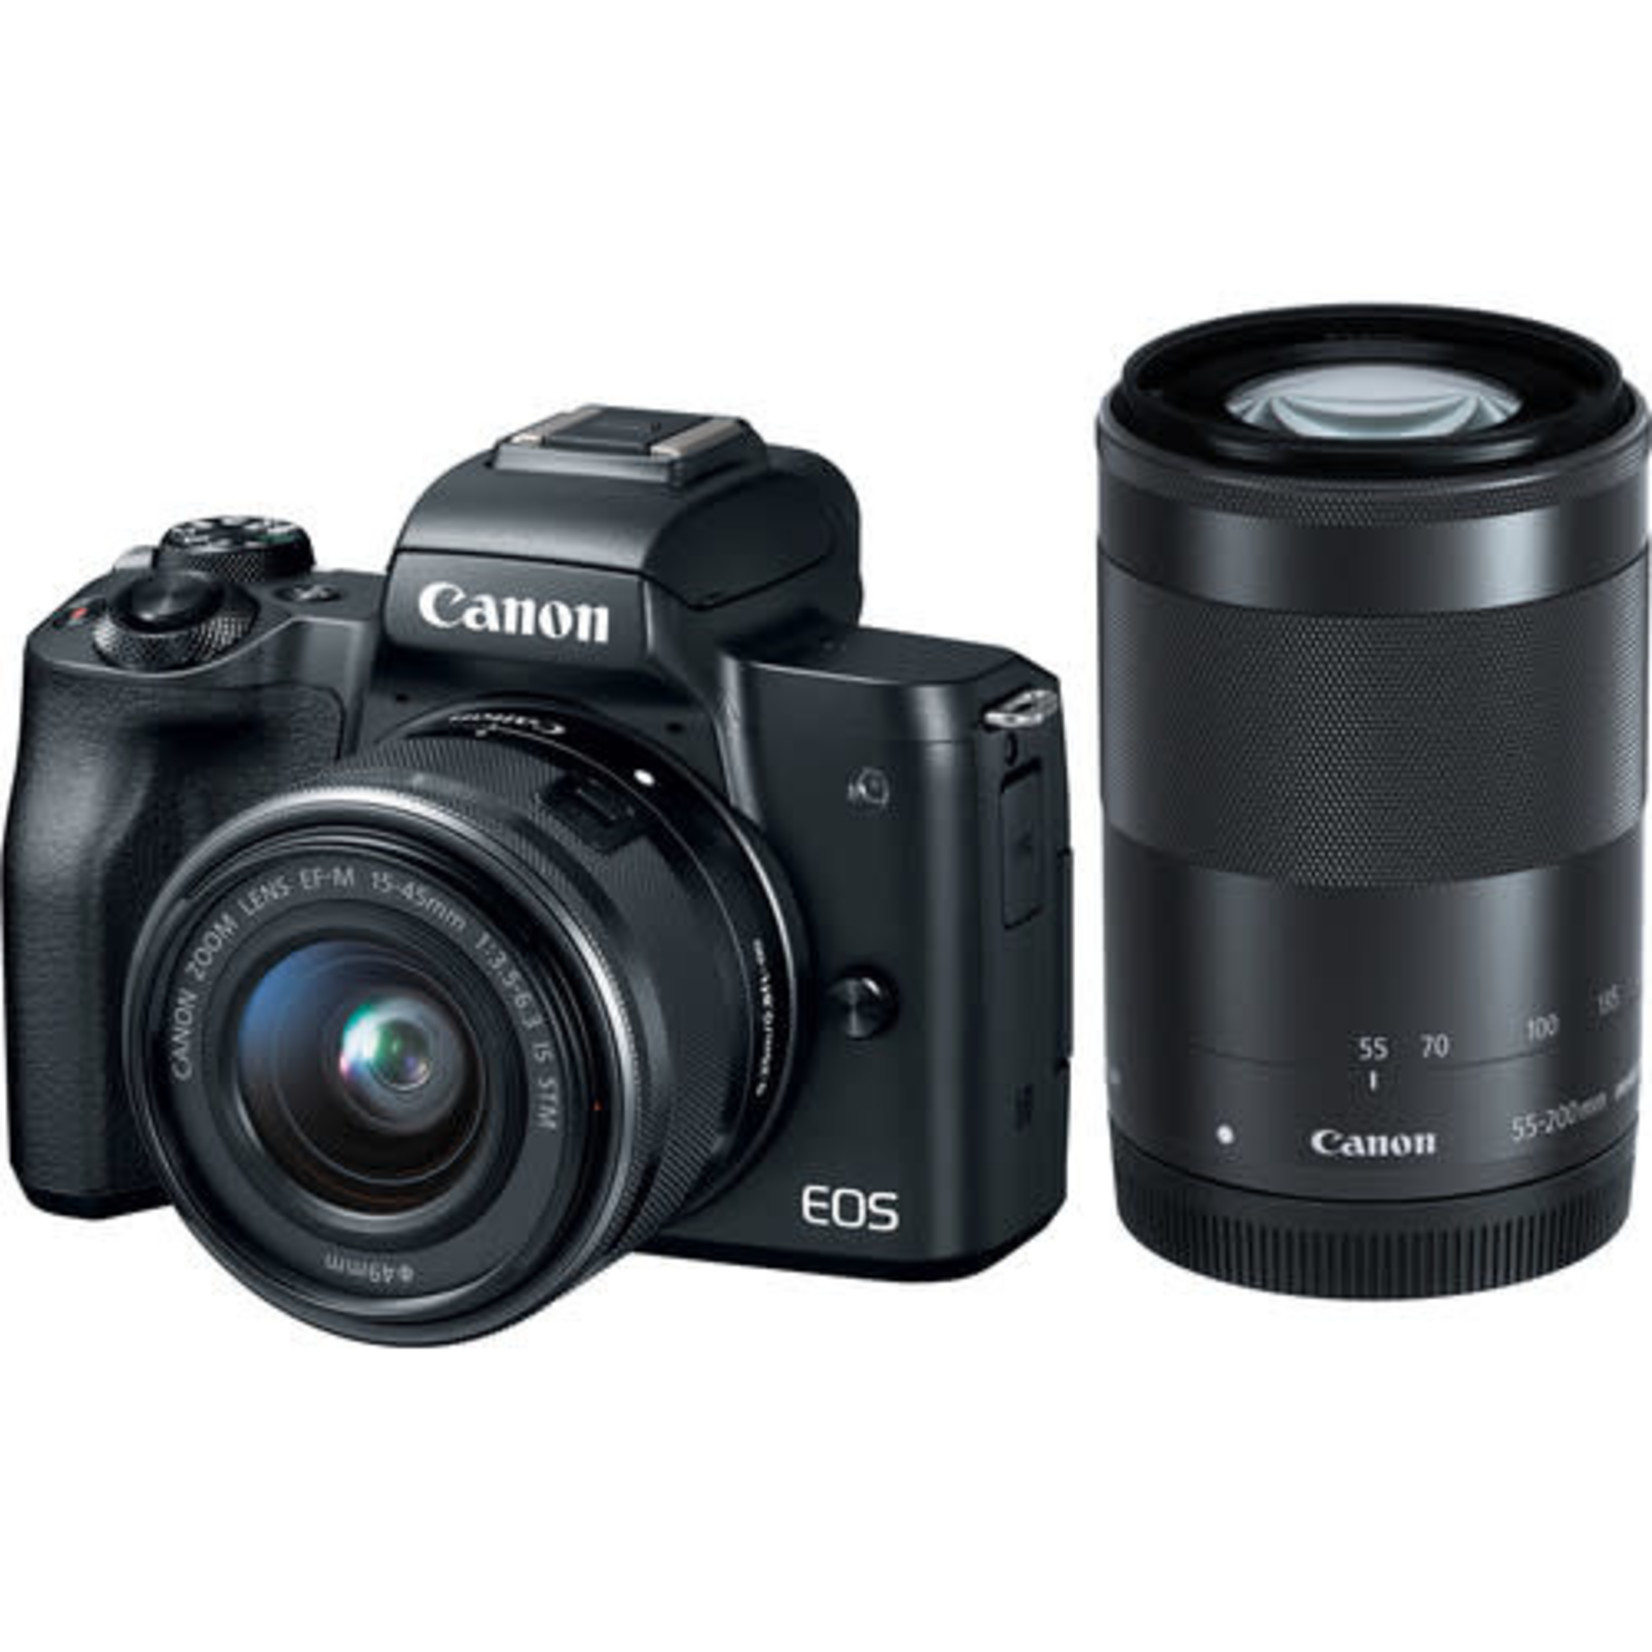 Canon Canon EOS M50 Mirrorless Digital Camera with 15-45mm and 55-200mm Lenses (Black)